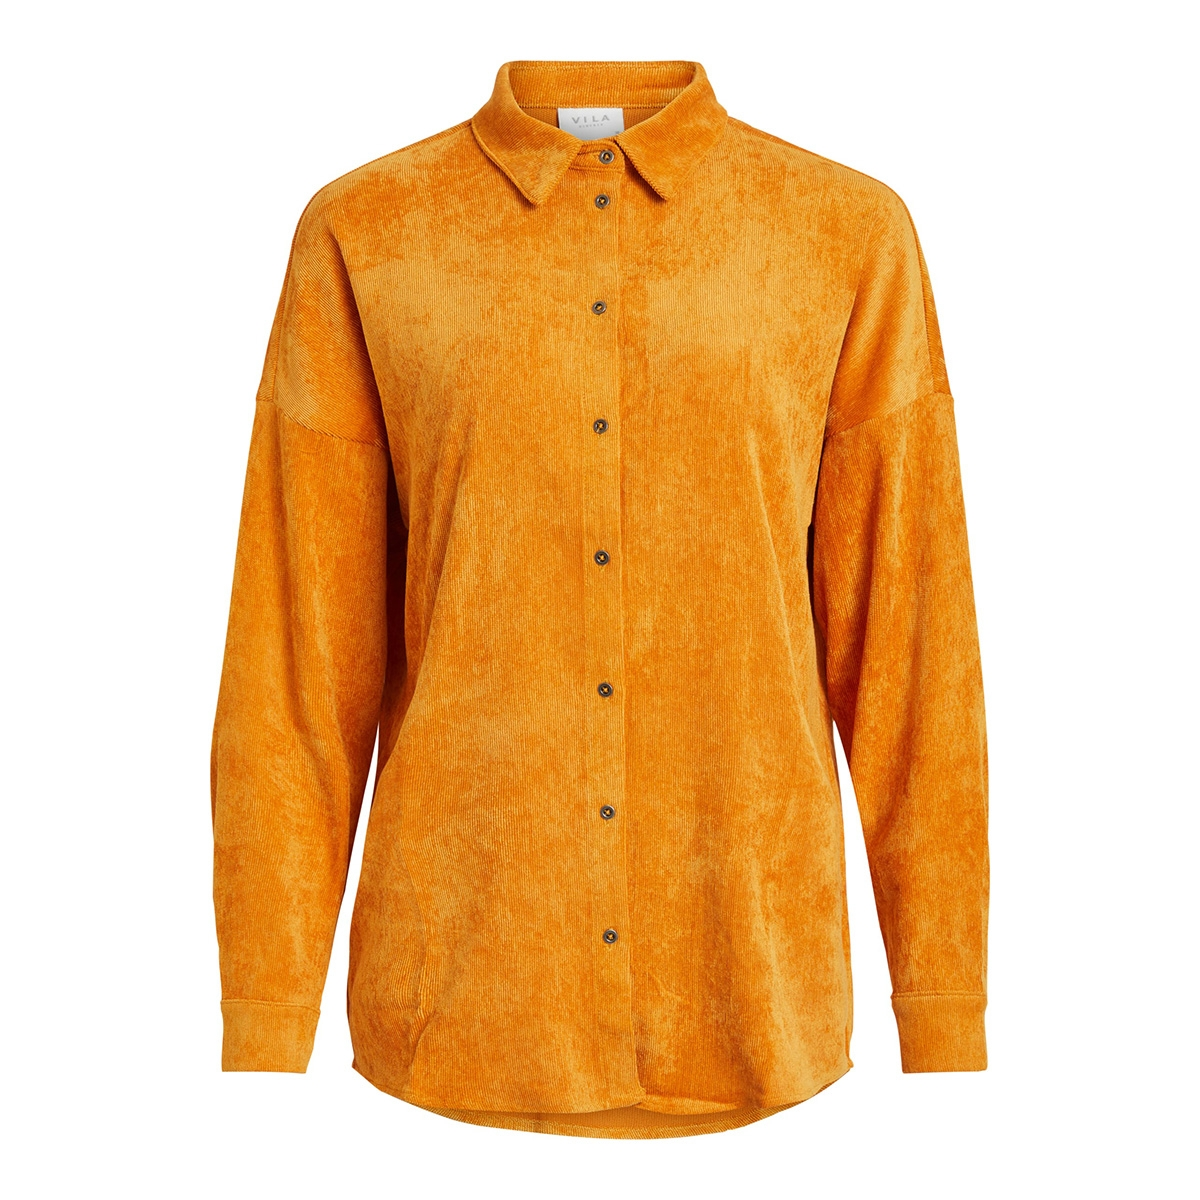 vives l/s shirt/ki/tb 14054891 vila blouse golden oak